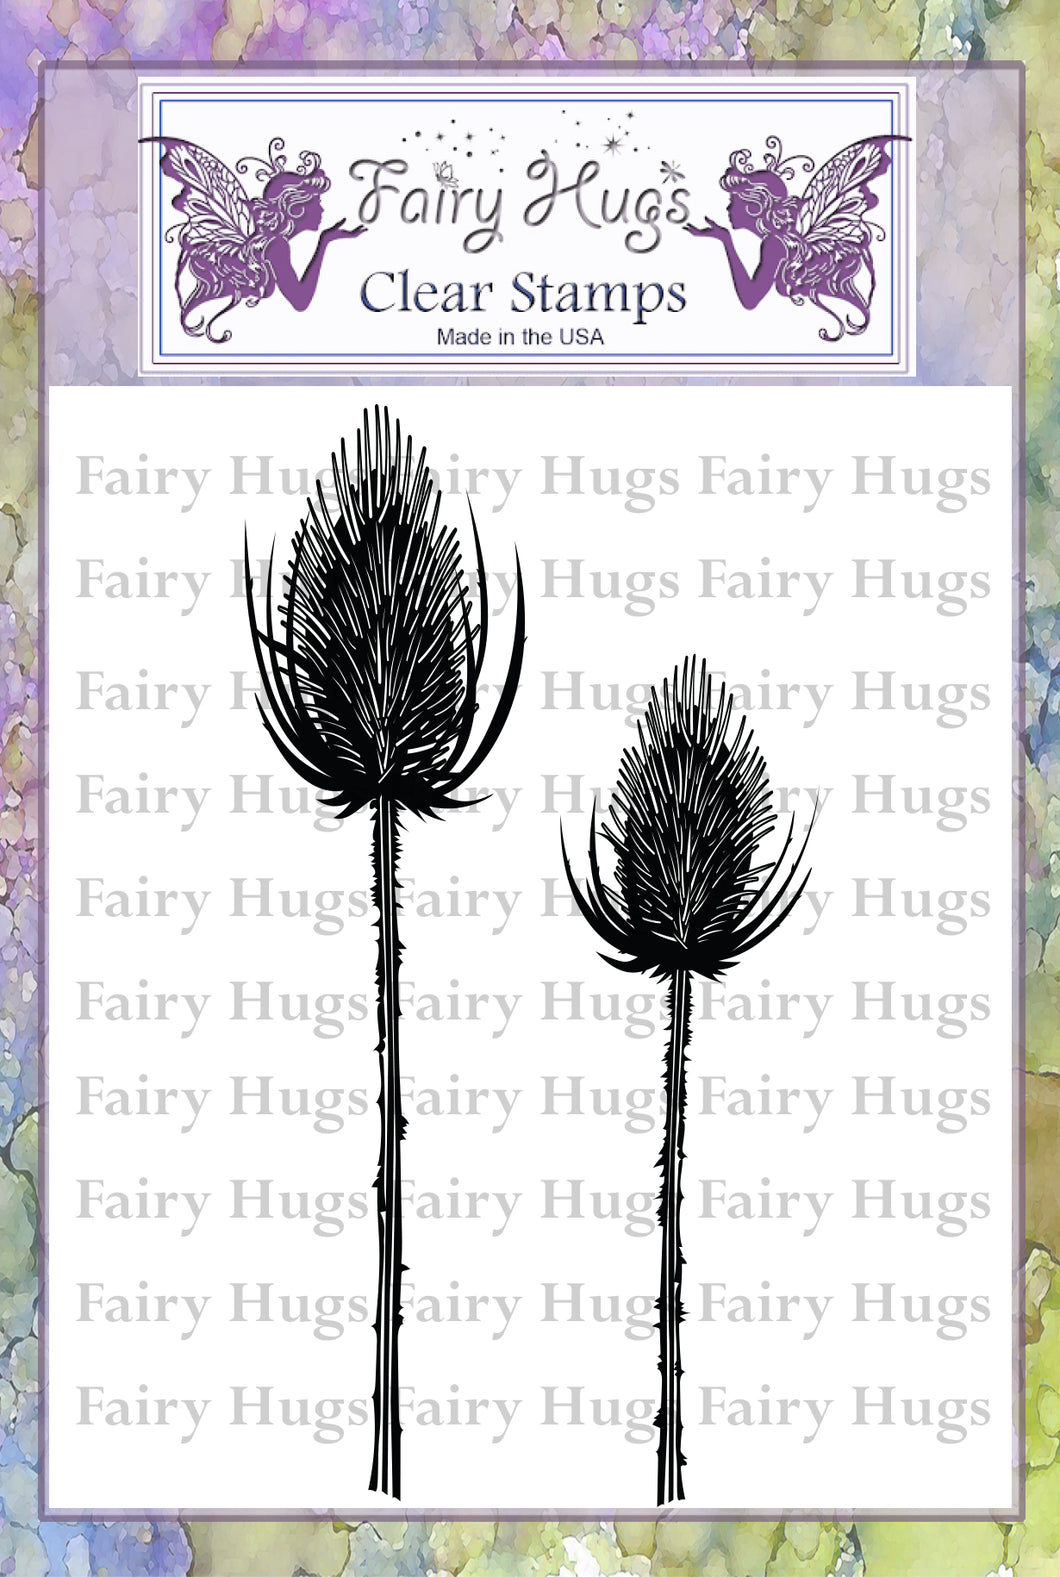 Fairy Hugs Stamps - Black Thistles